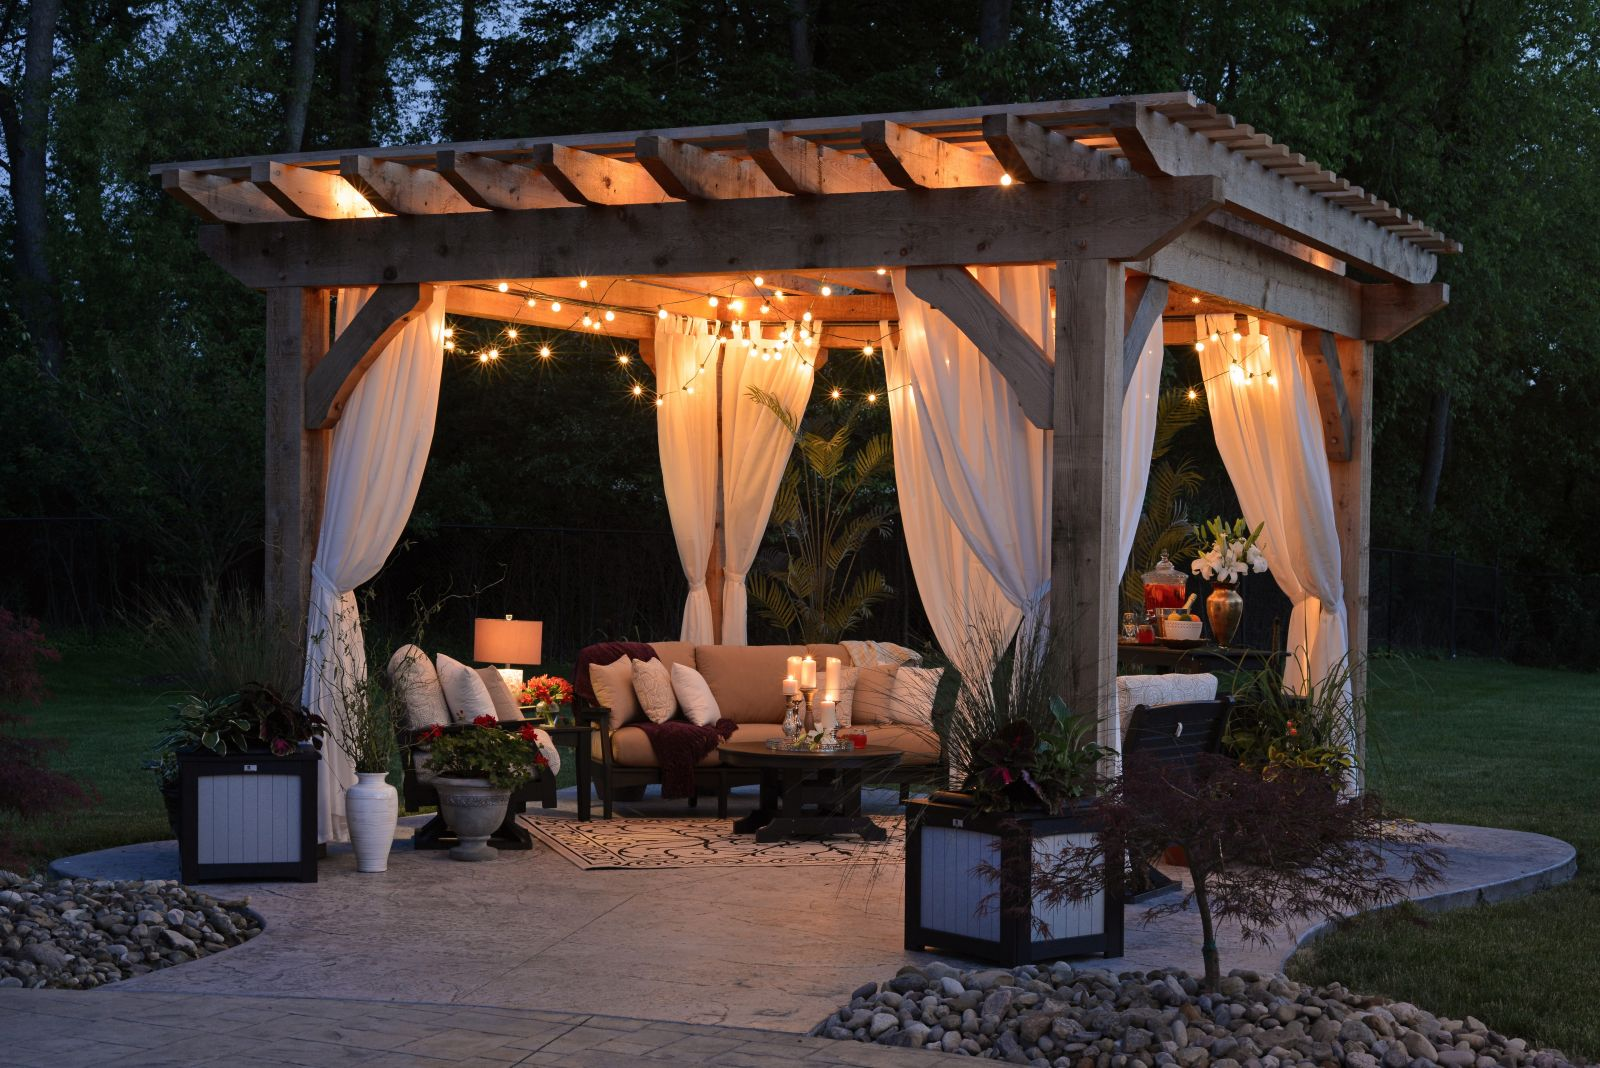 Patio with candle lights and heating